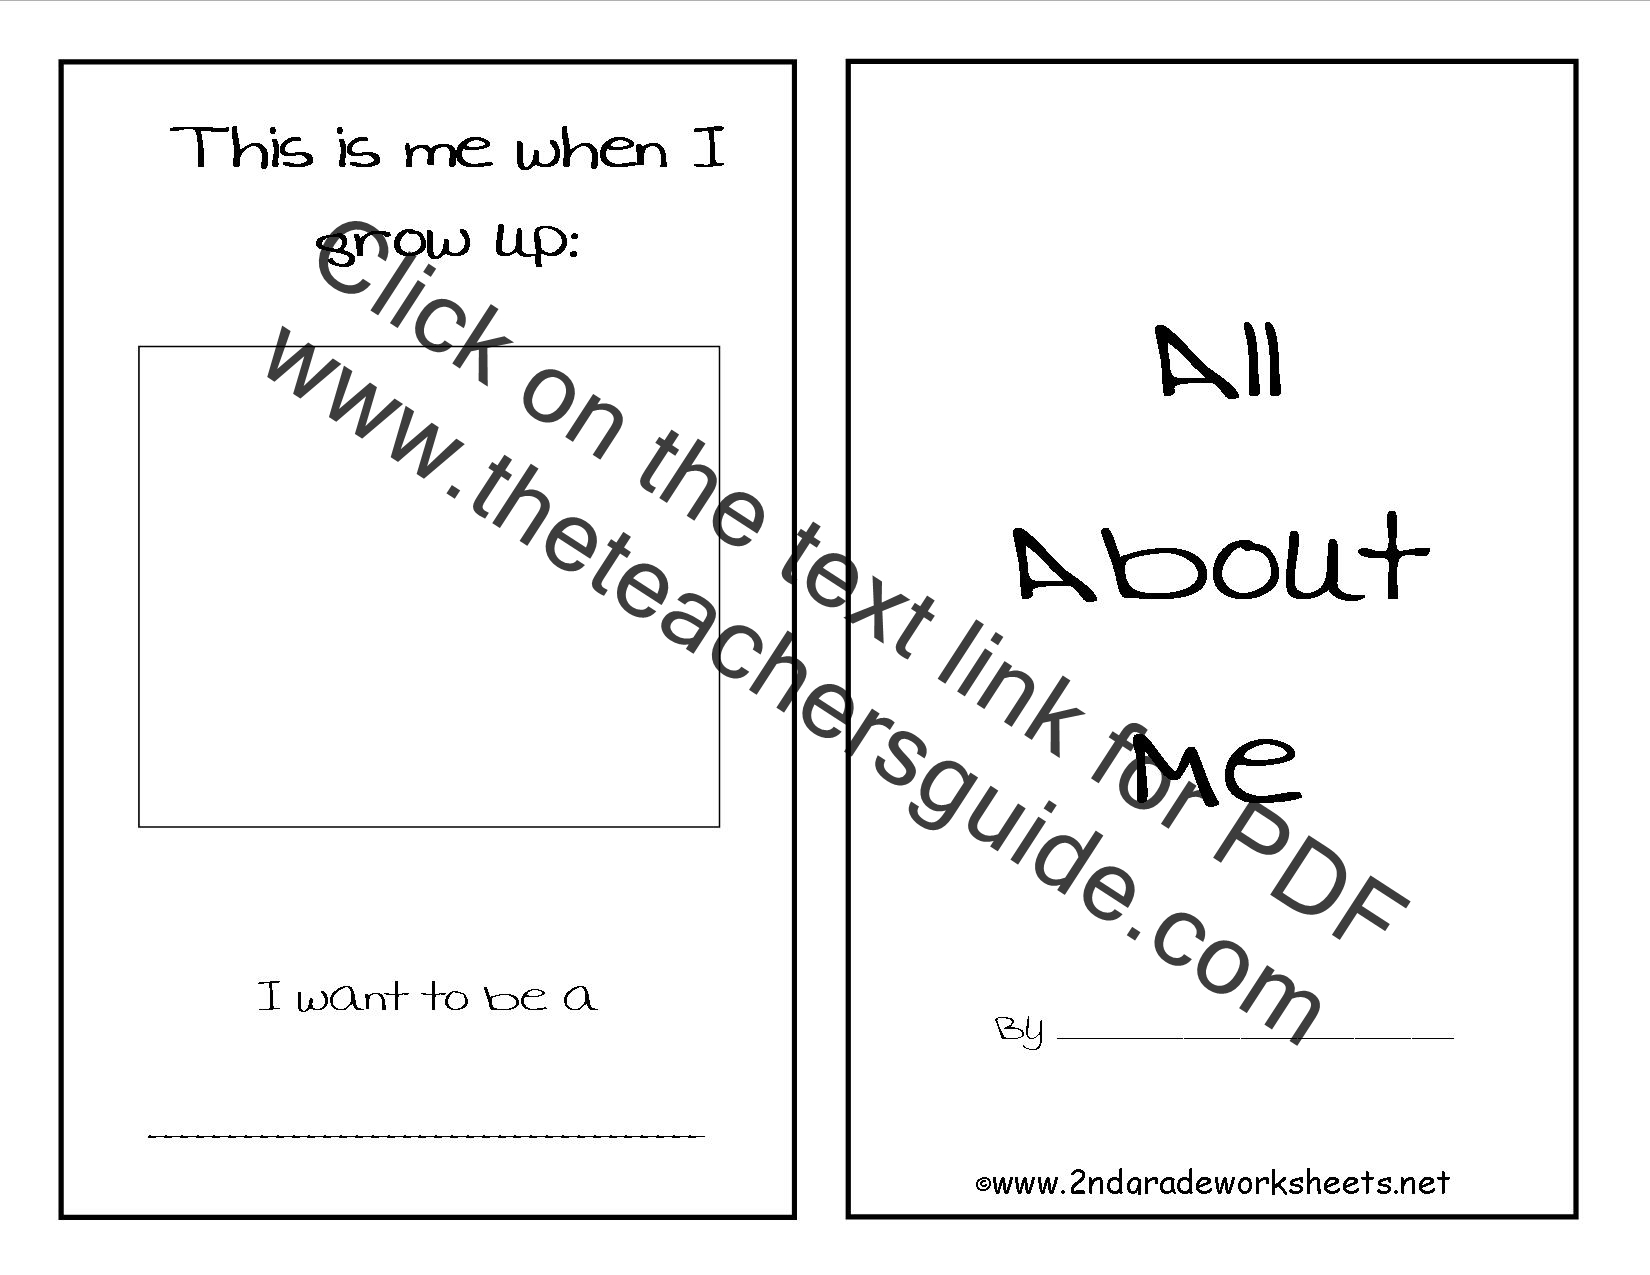 Printables Free Printable School Worksheets free back to school worksheets and printouts all about me worksheet school